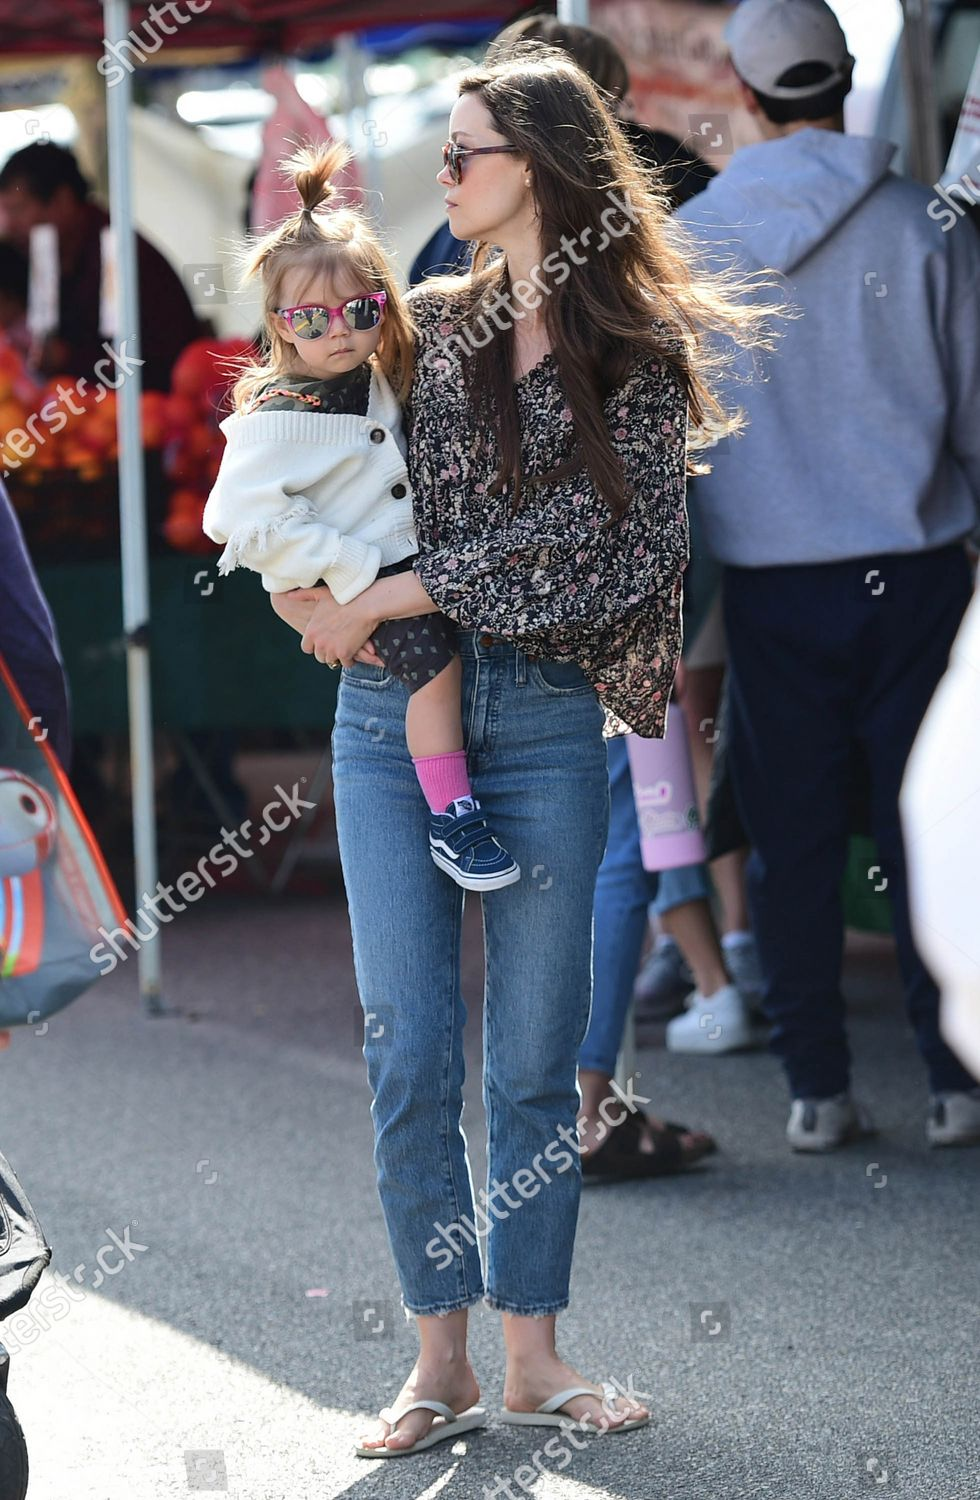 Summer Glau Sunny Isabou Editorial Stock Photo Stock Image Shutterstock Val is wearing levi's jeans. https www shutterstock com editorial image editorial summer glau and val morrison out and about los angeles usa 23 feb 2020 10565332g